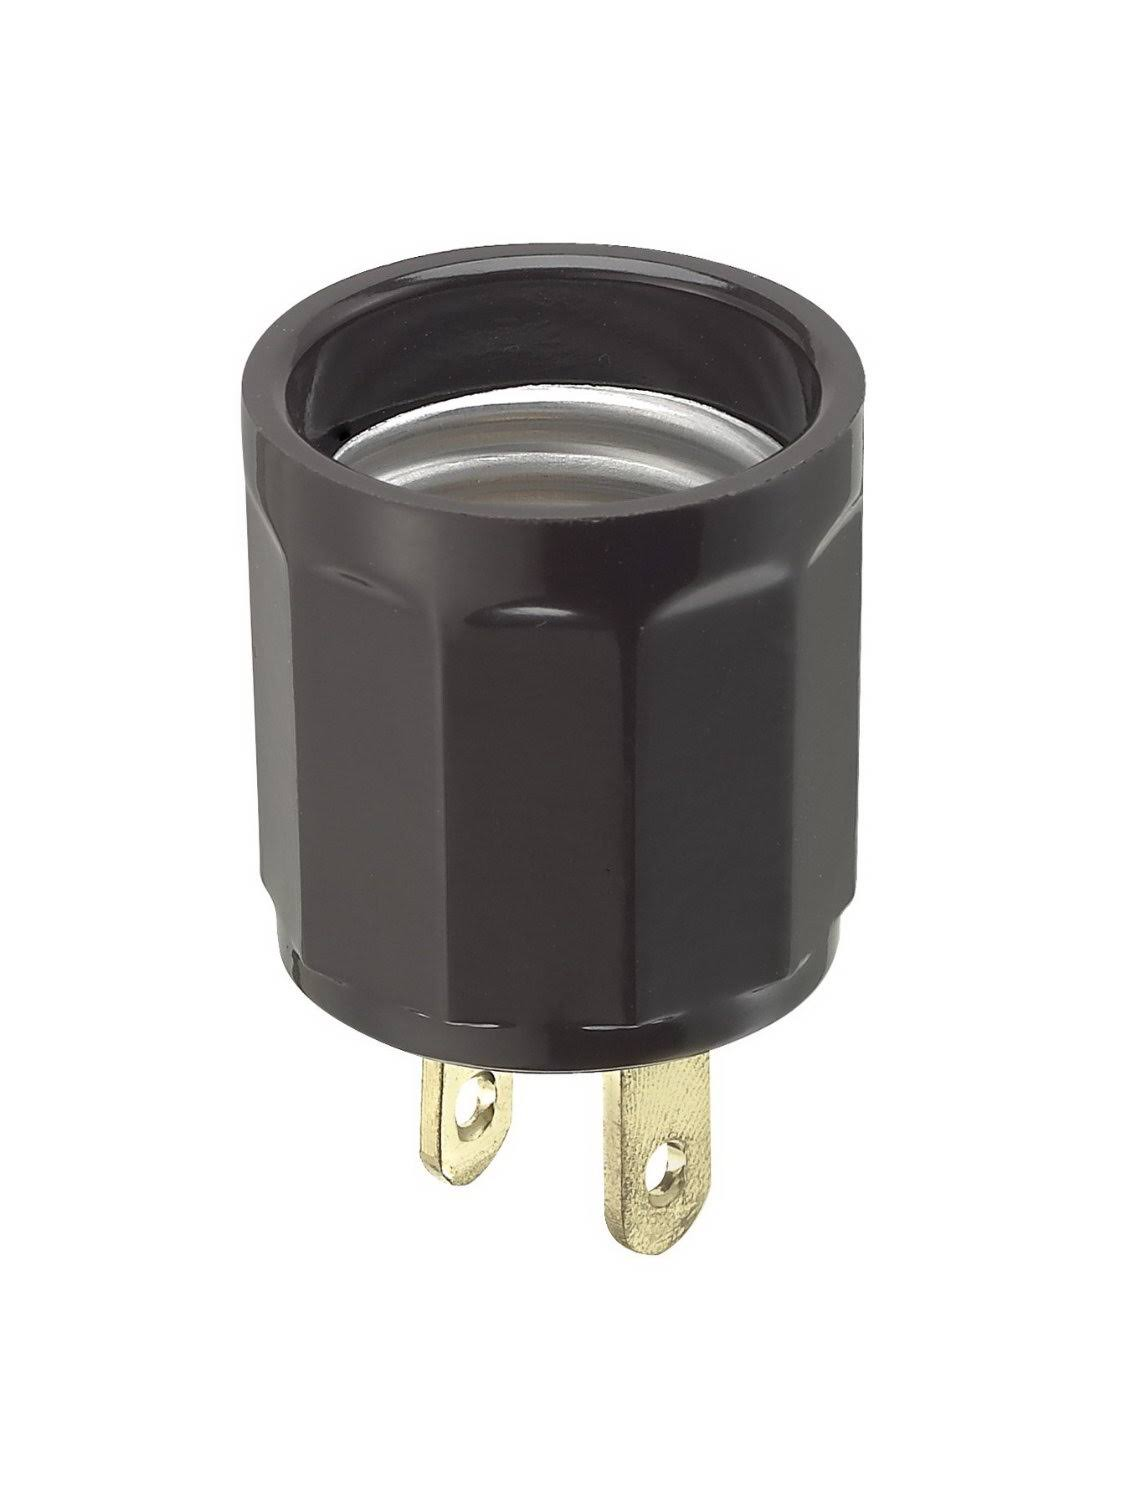 Leviton Adapter Outlet To Socket - Brown